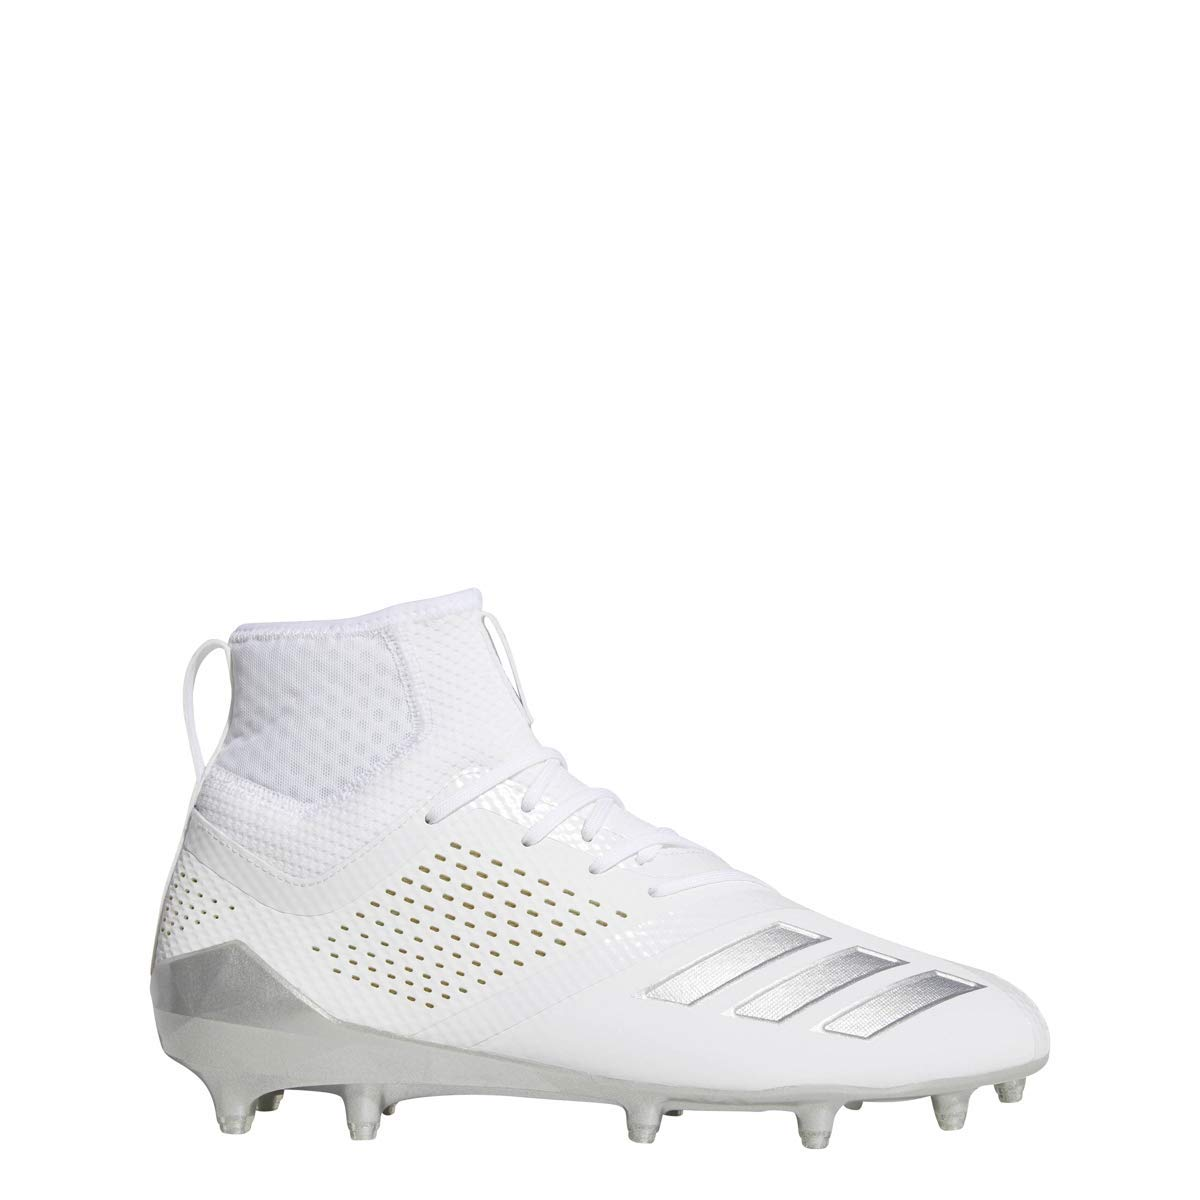 a4c8fc7011 Amazon.com: adidas Adizero 5-Star 7.0 Mid Cleat - Men's Lacrosse: Shoes